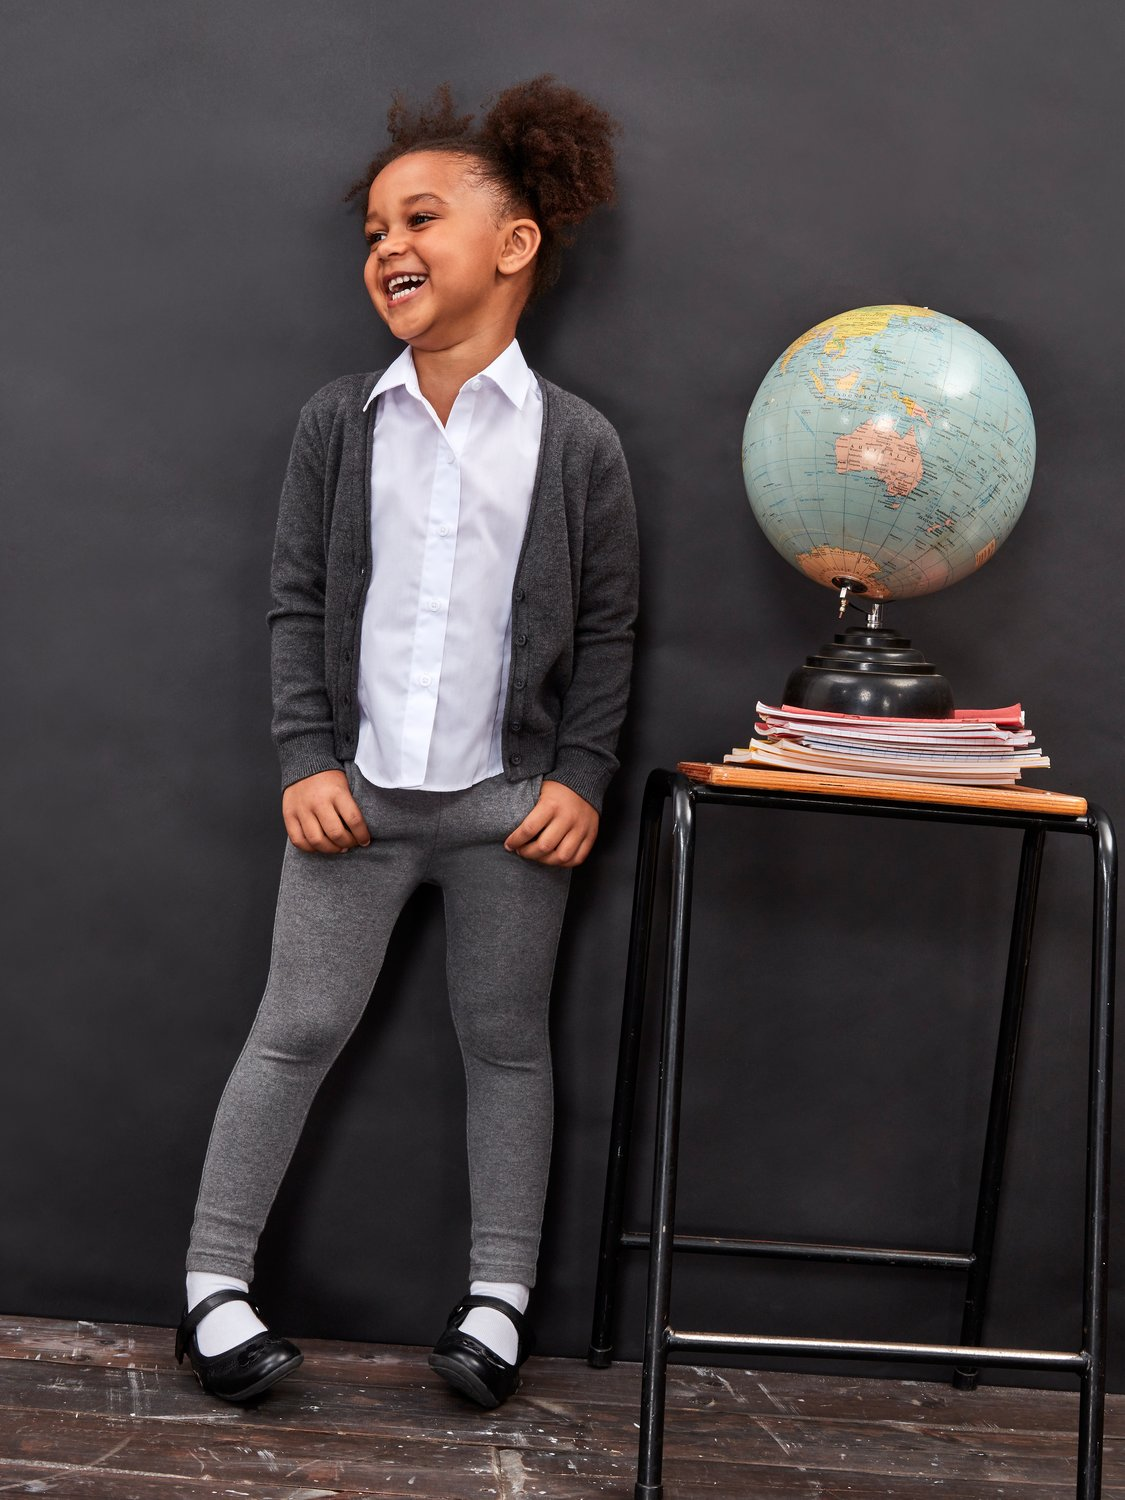 M&Co Girls Slim Fit Trousers - Stretch Slim Leg Trouser for School Uniform - Toddlers and Children Age - Grey